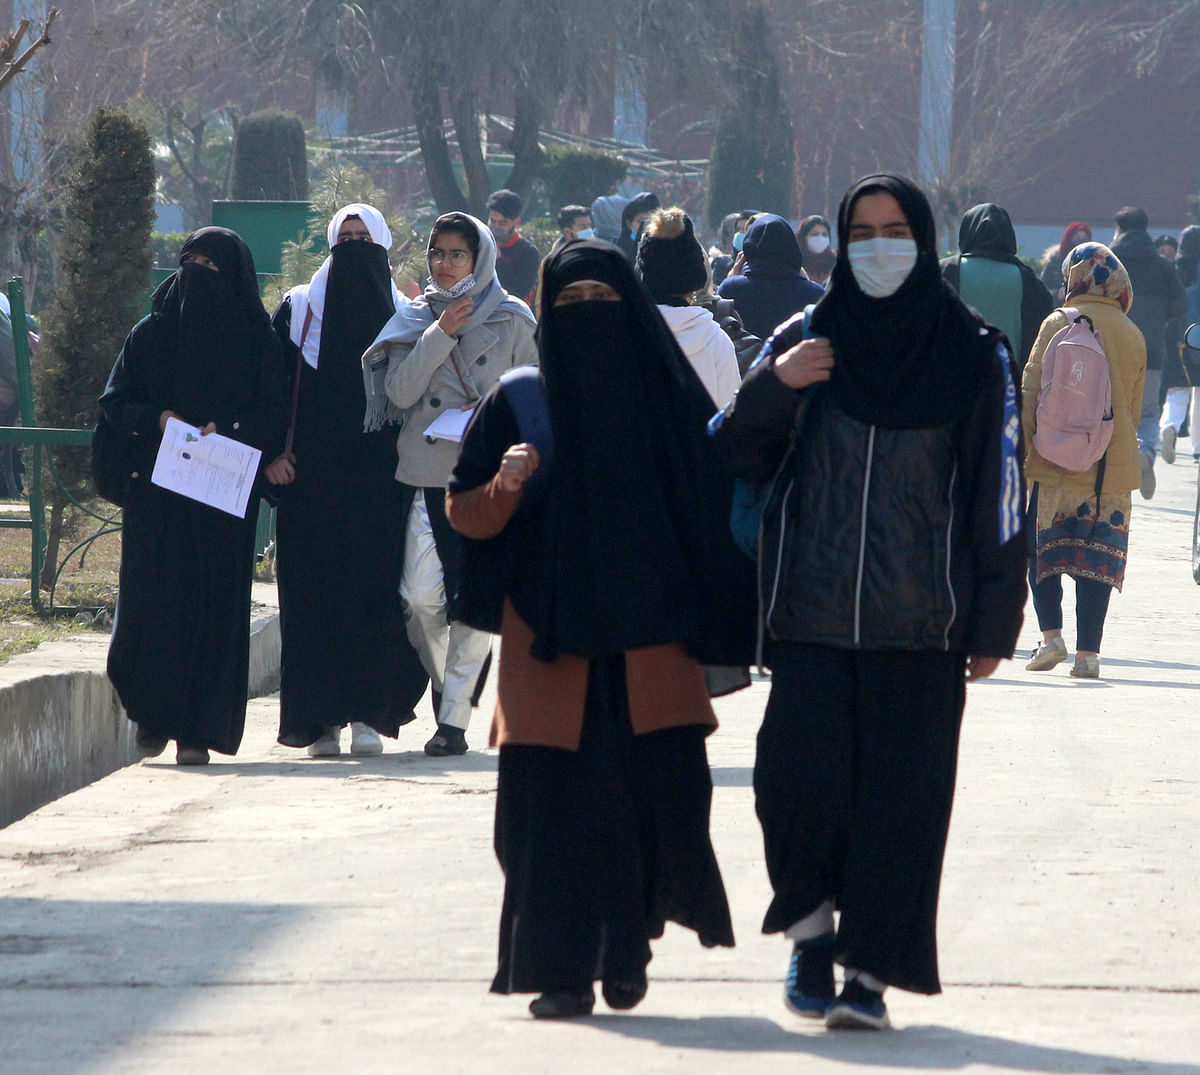 Students arrive at a Government college as the Colleges reopened after almost 11 months of break due to the Covid-19 coronavirus pandemic in Srinagar, Kashmir on February 15, 2021.